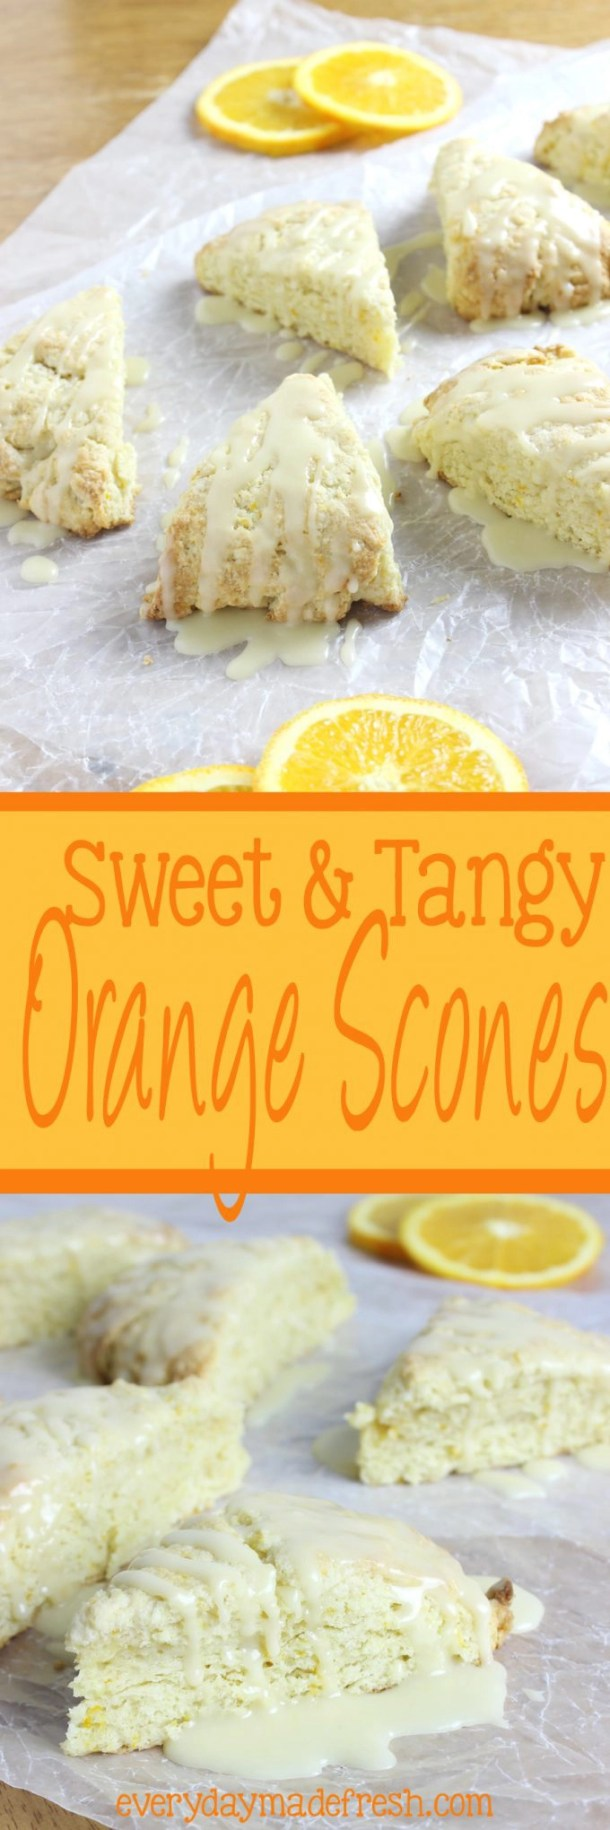 These Sweet & Tangy Orange Scones are studded with zest and bursting with fresh orange flavor! | EverydayMadeFresh.com